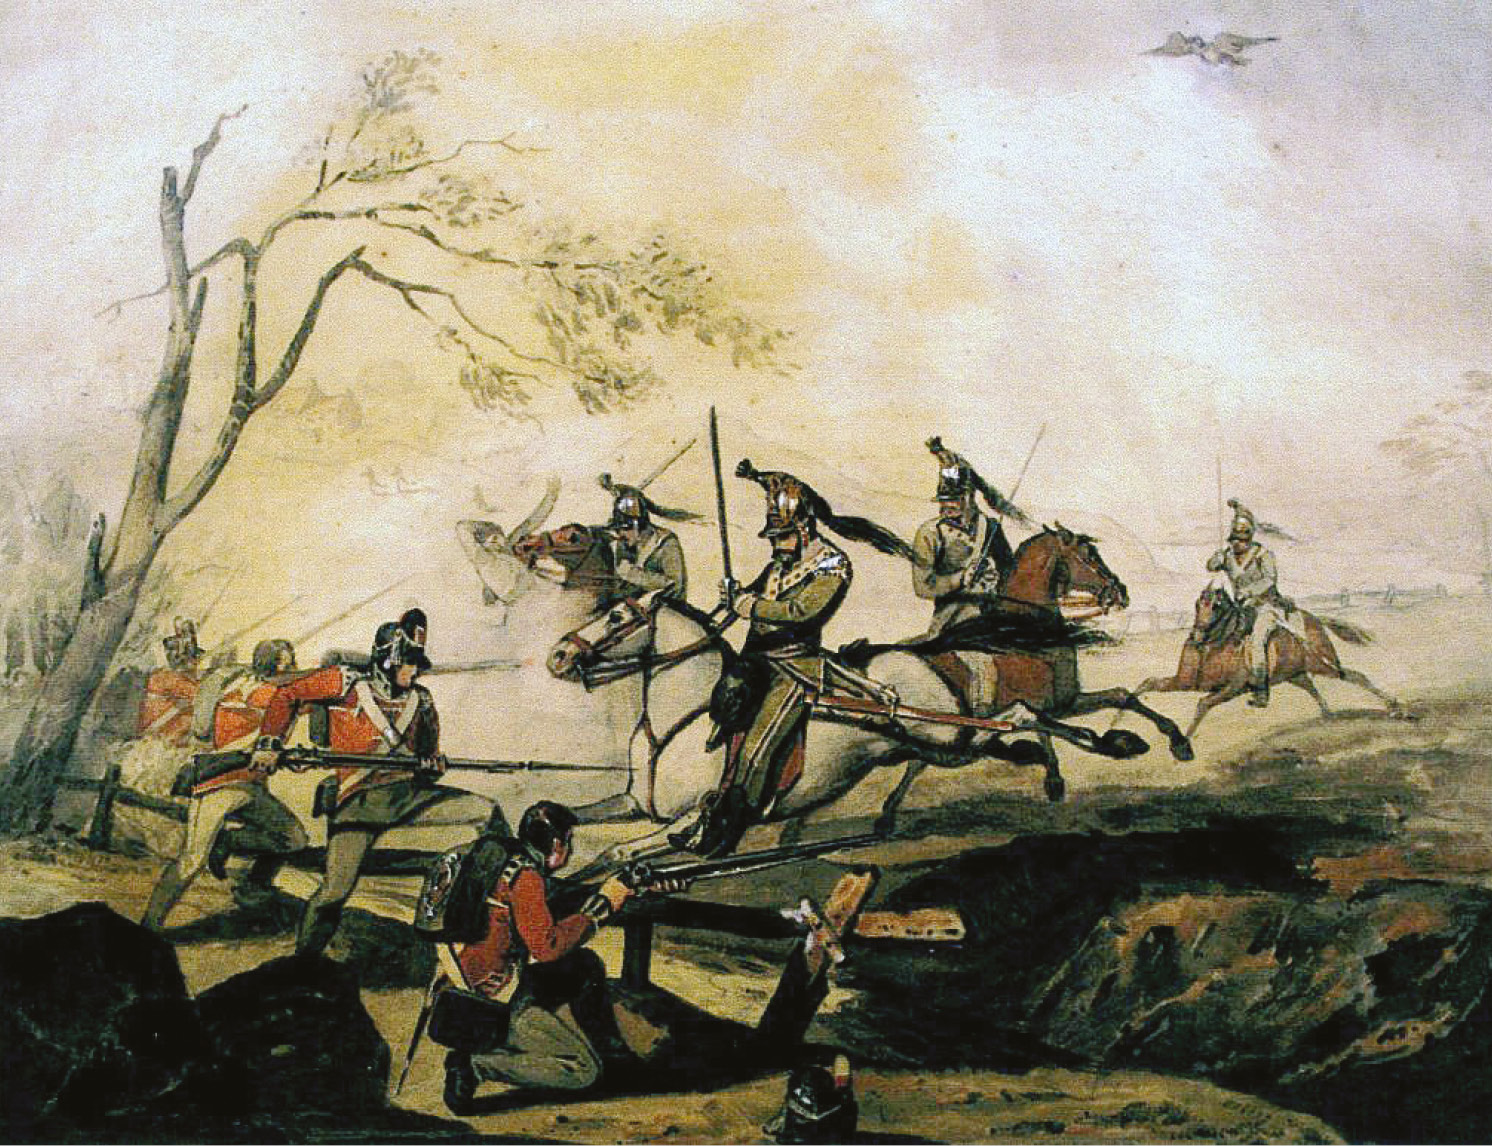 BELOW British infantry fight against the French heavies at Corunna. Moore recognised the need for an agreed and coherent light-infantry system across the whole British Army.